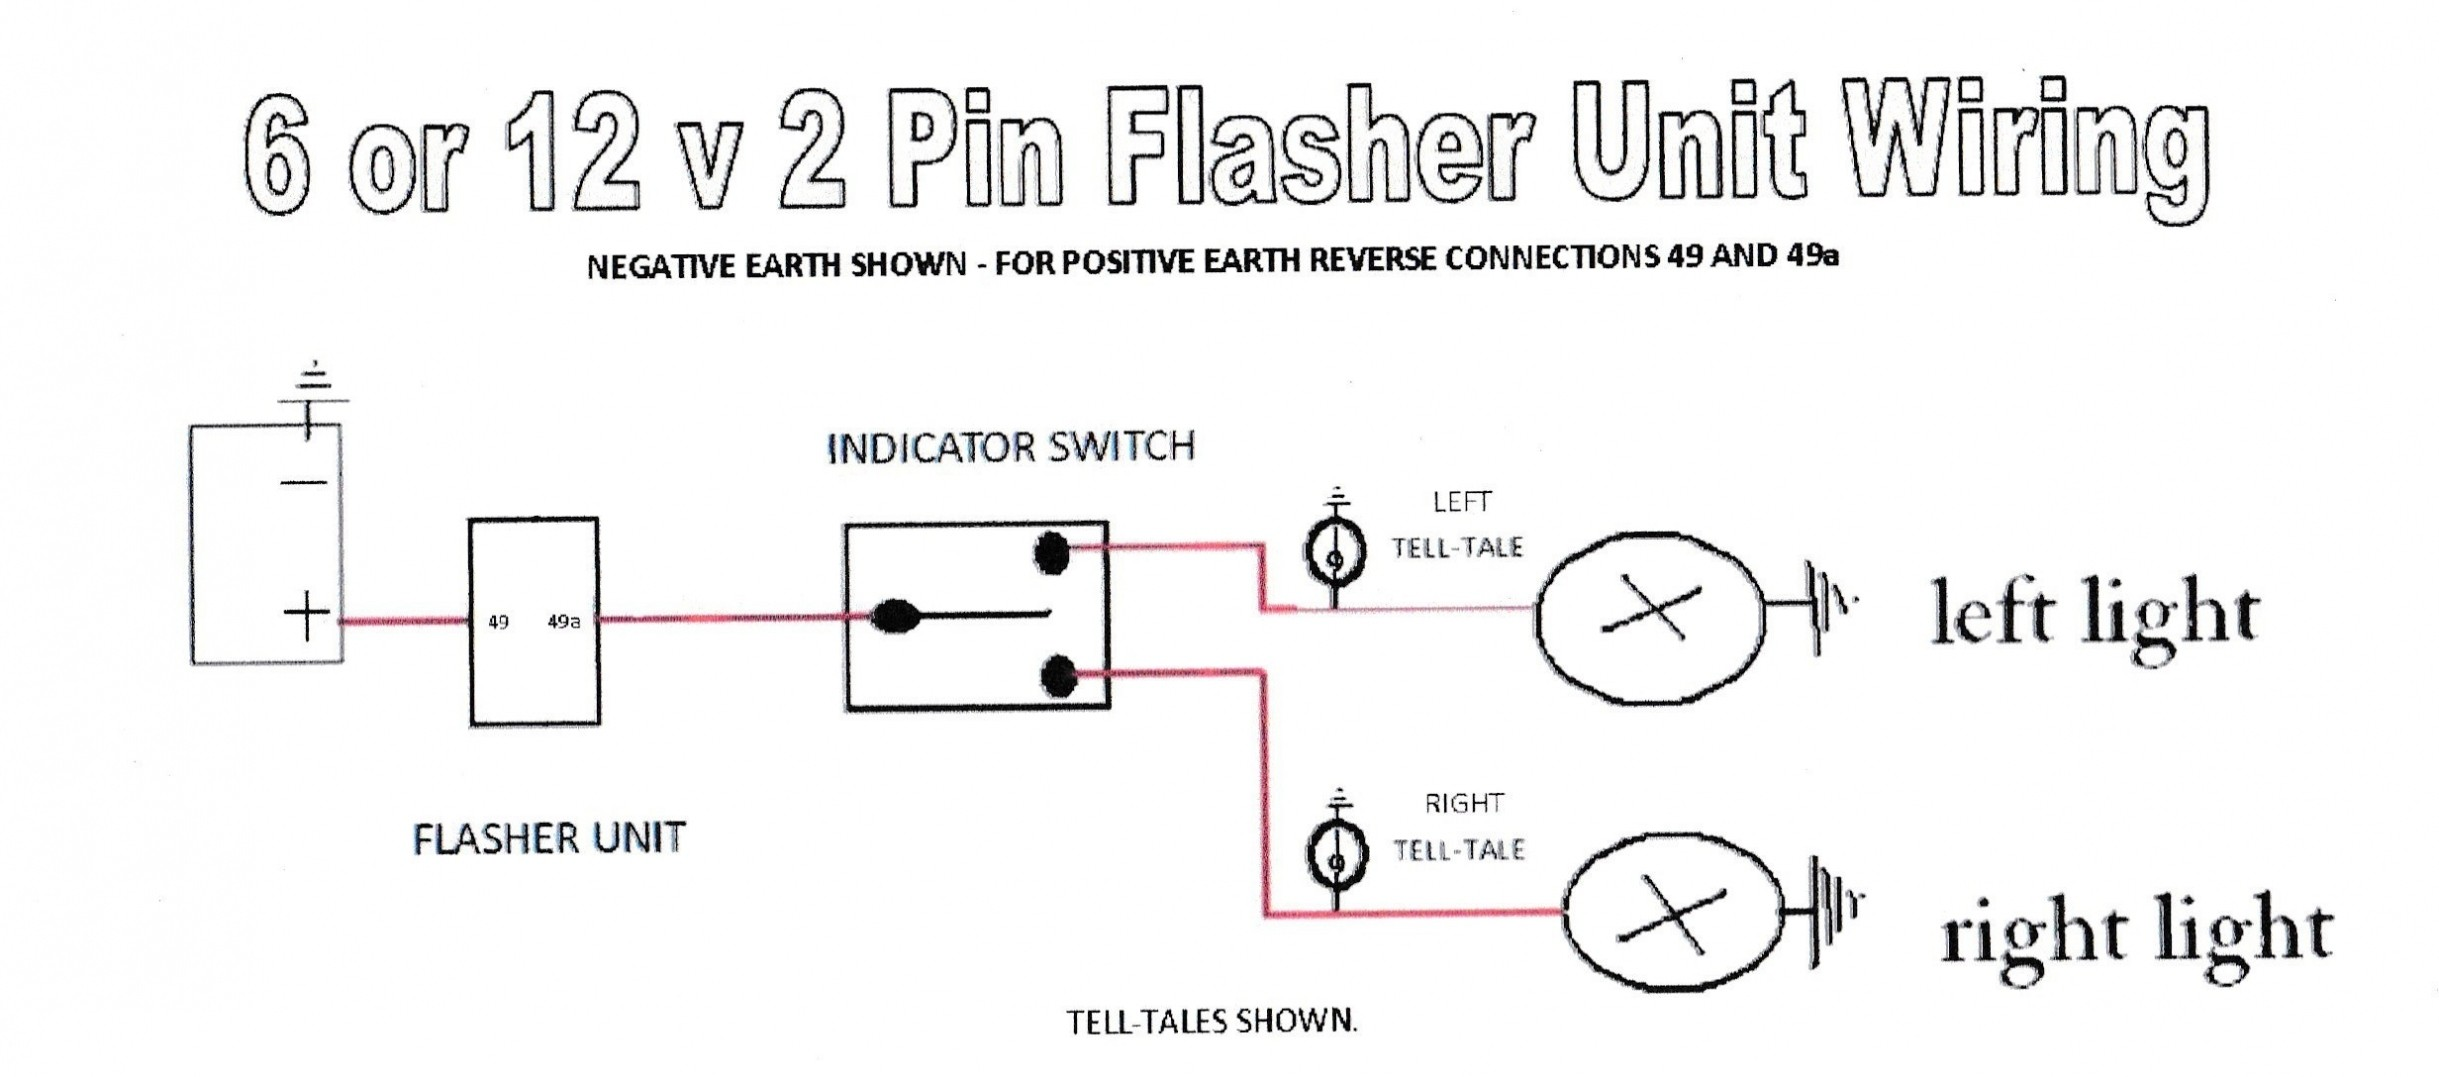 How to Wire Signal Flasher and 4 Ways Flasher Three Pole Flasher Wiring Diagram Diagram Base Website Of How to Wire Signal Flasher and 4 Ways Flasher